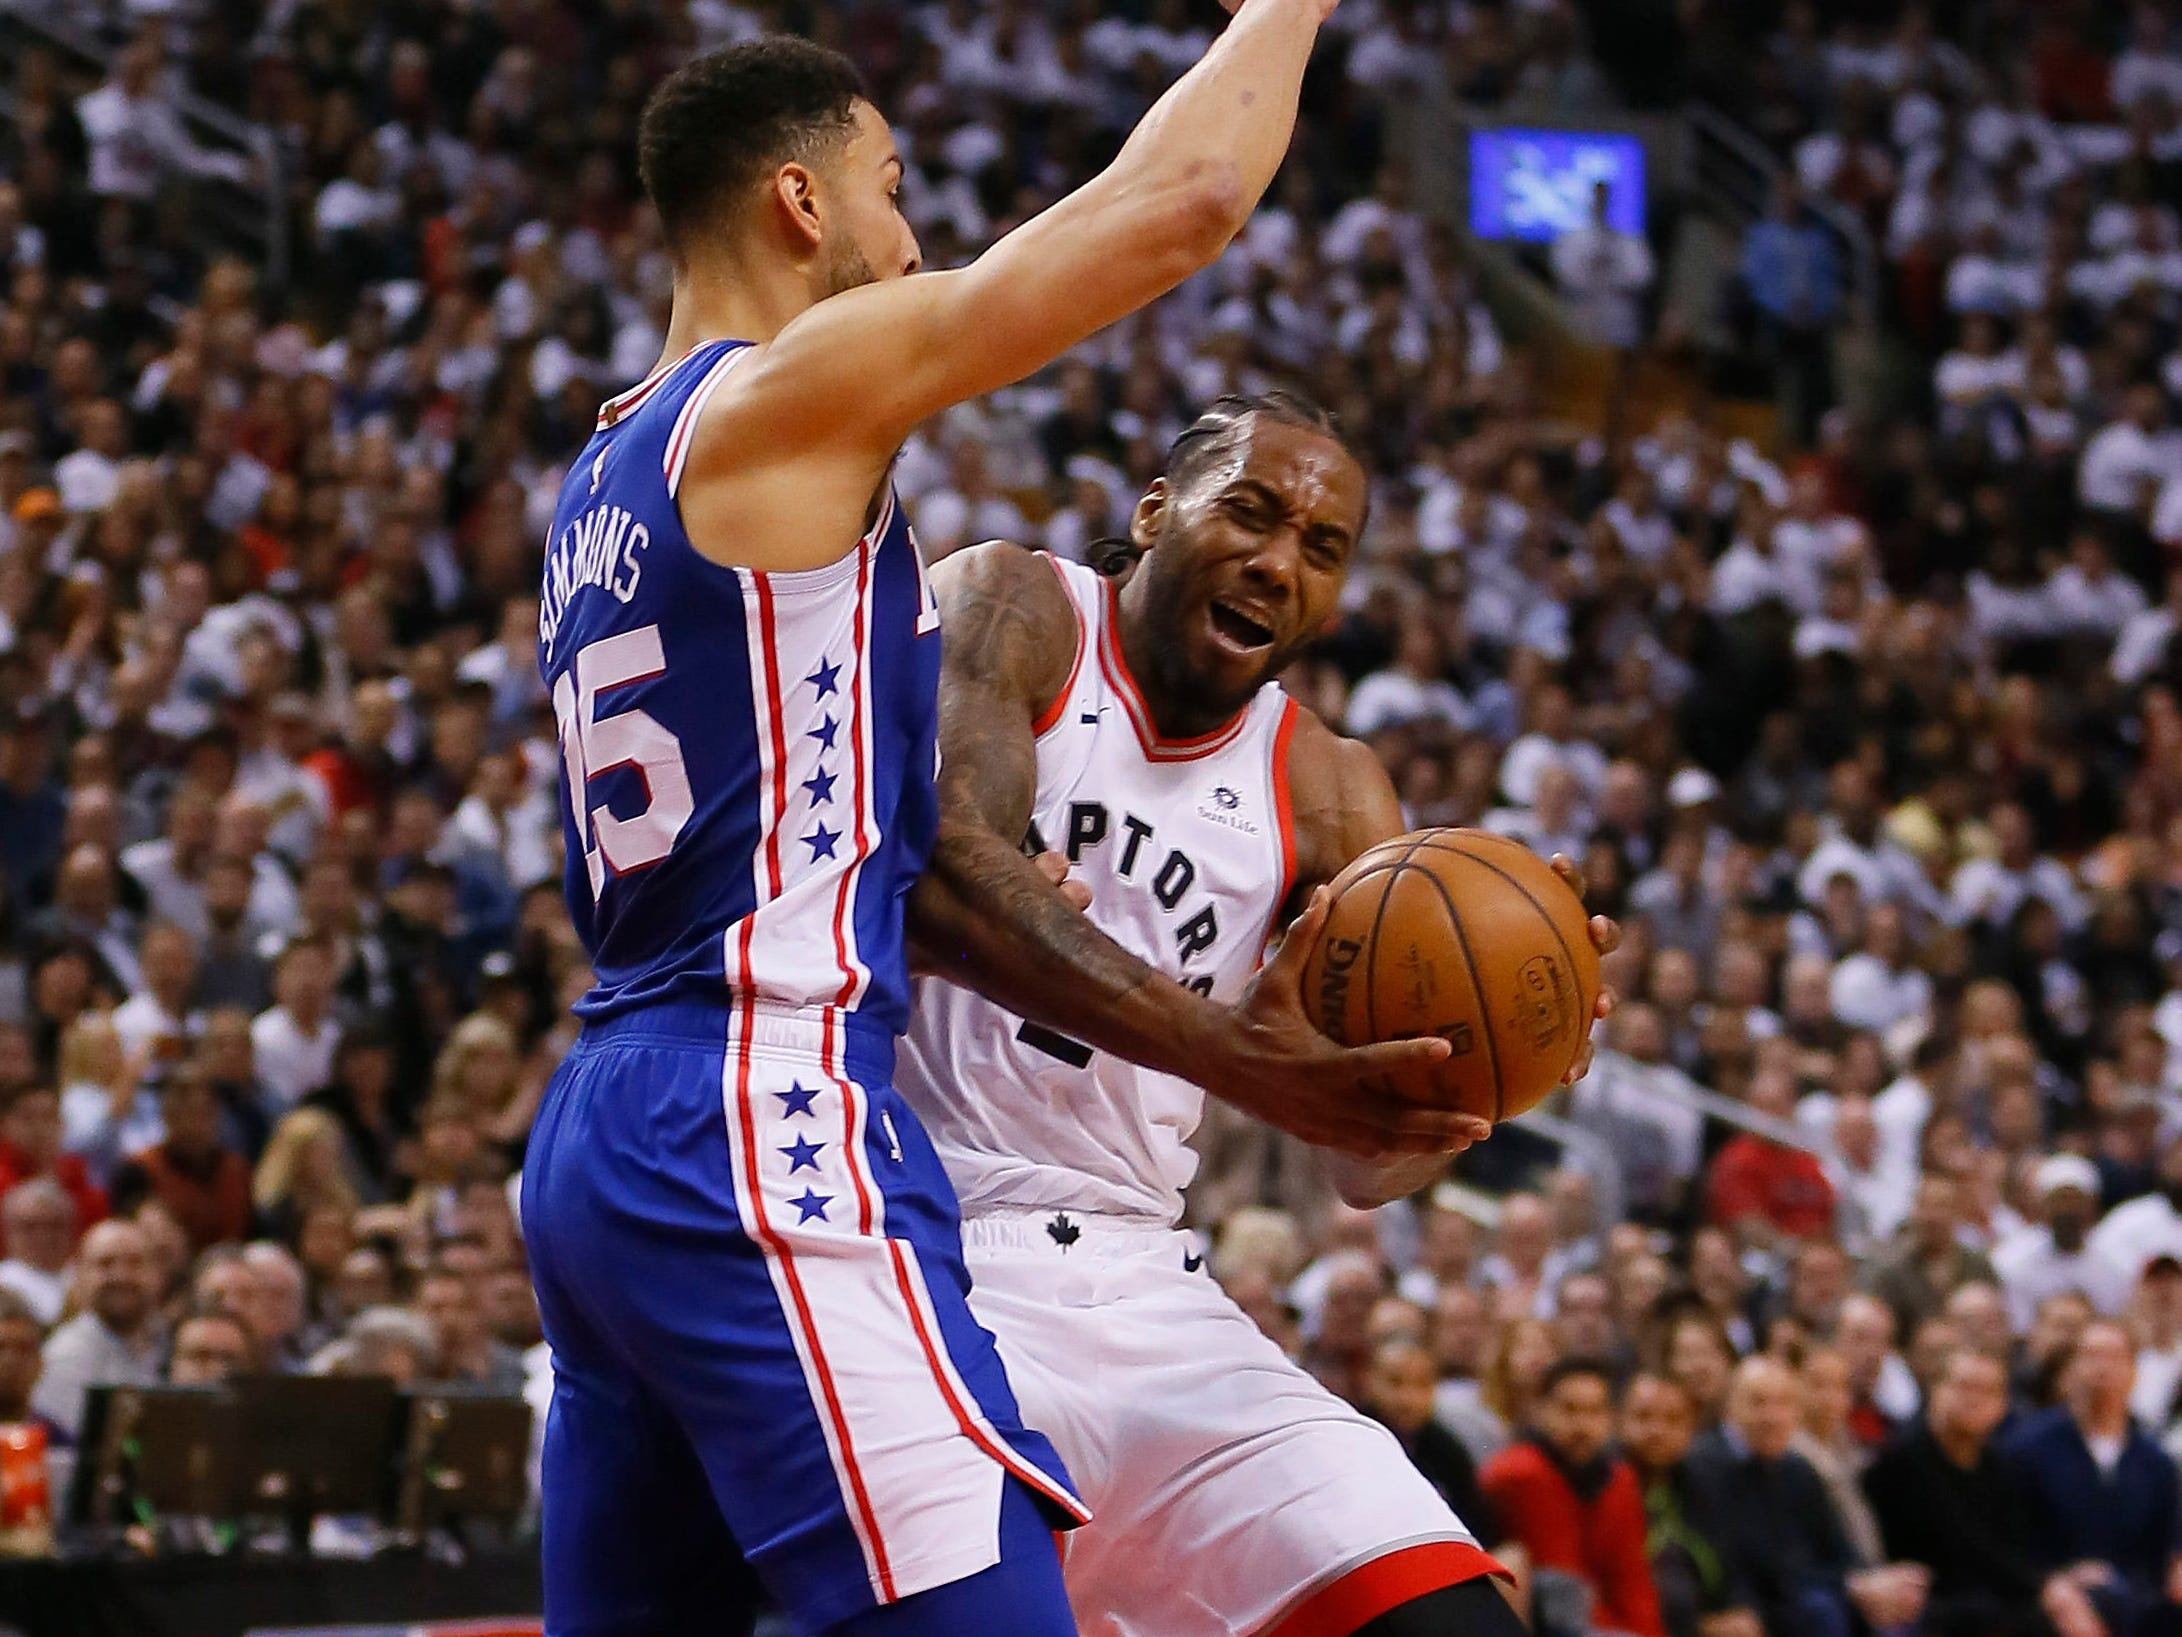 April 27: Raptors forward Kawhi Leonard (2) takes the bump as he drives to drive against 76ers defender Ben Simmons (25) during Game 1.